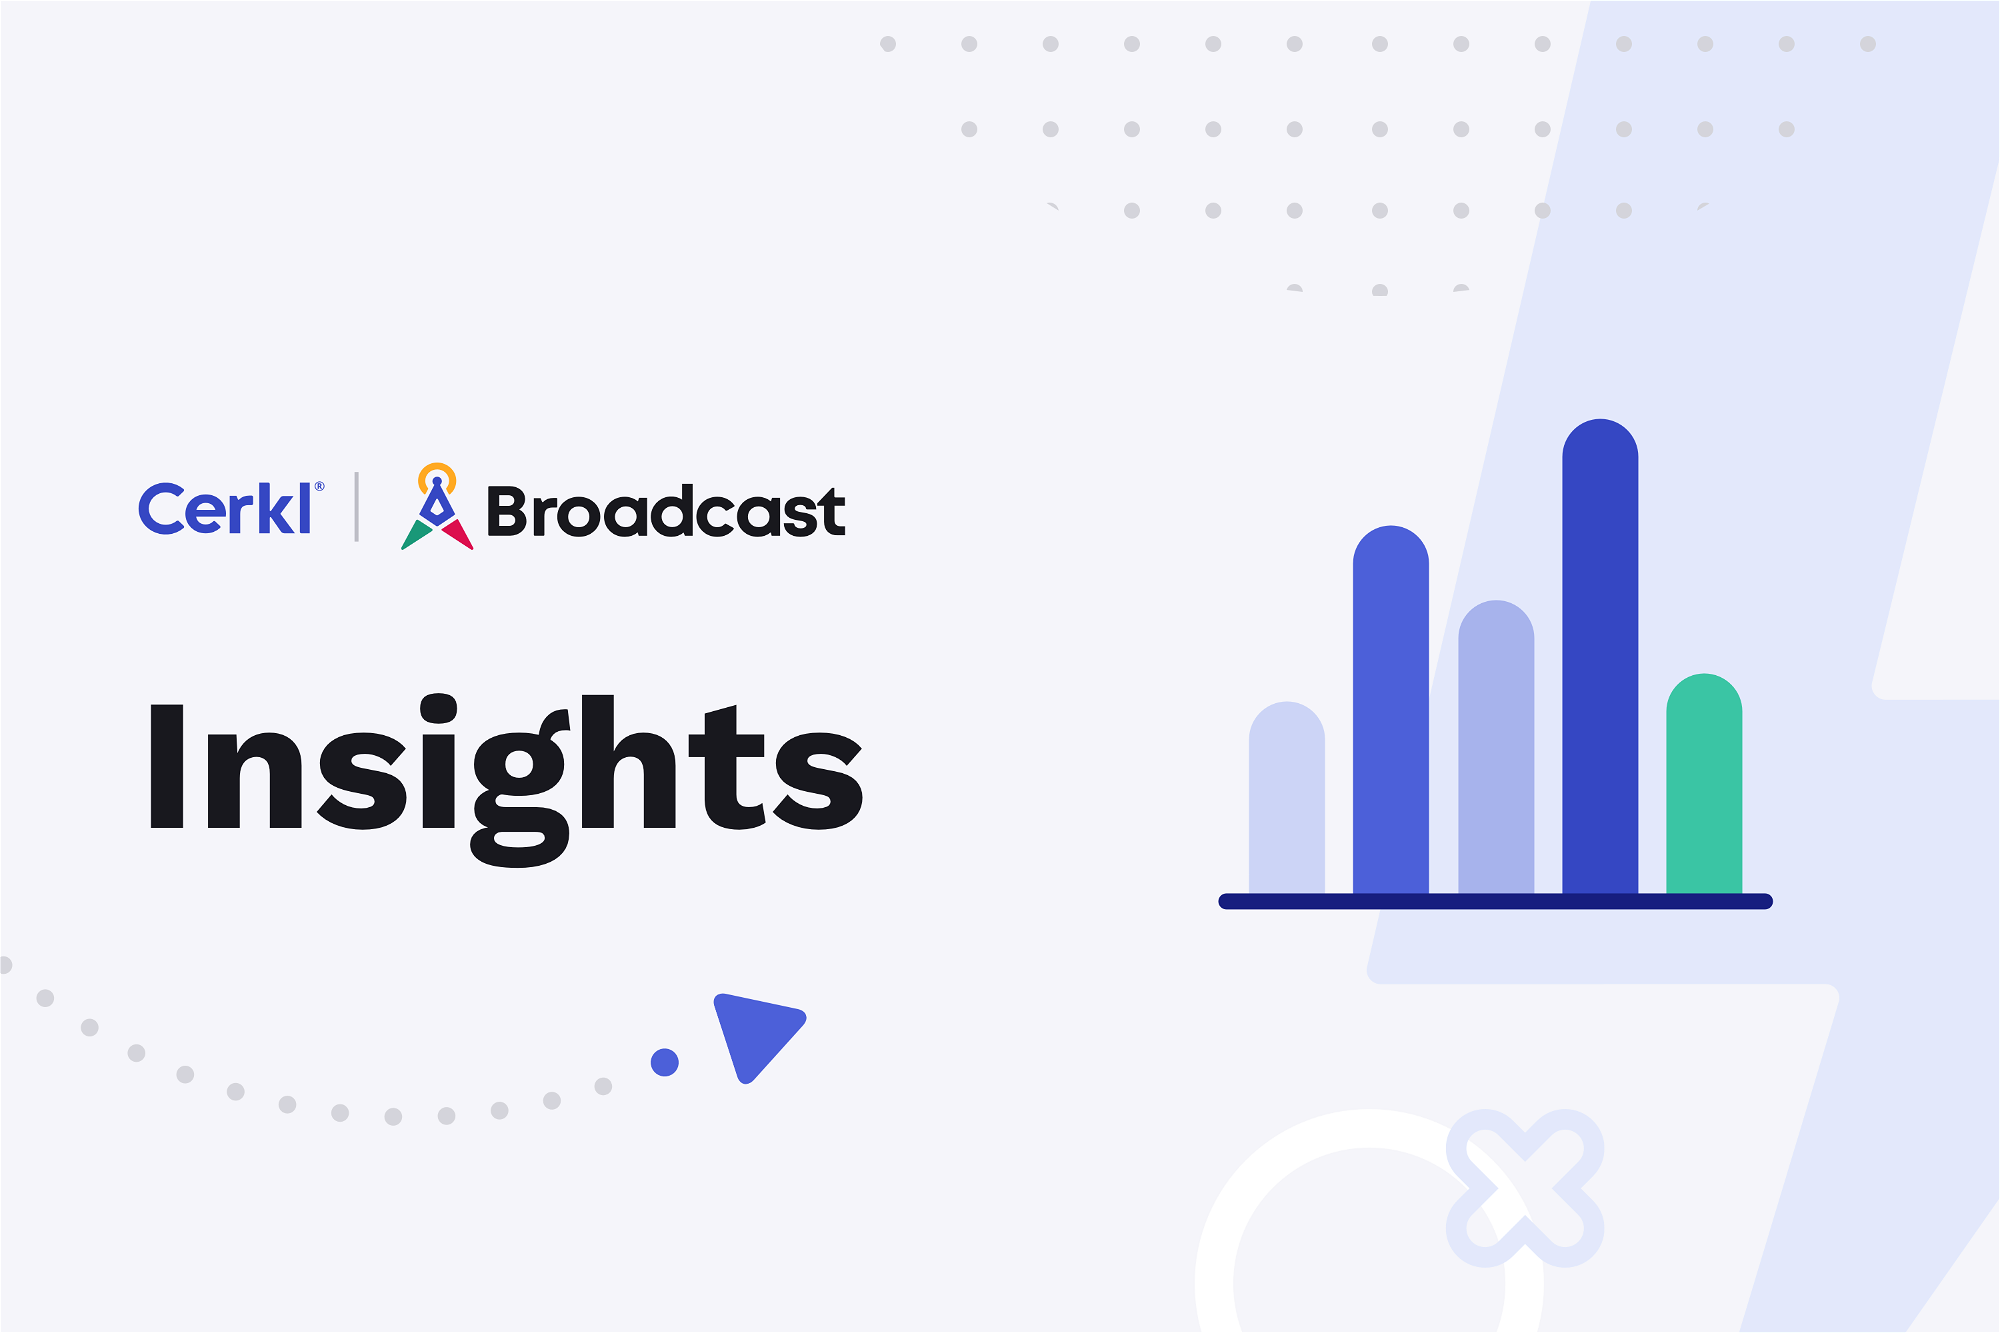 Broadcast Insights, Cerkl Broadcast Insights, Broadcast Analytics, cross-channel measurement, cross-channel comms, cross-channel internal communications, internal communications